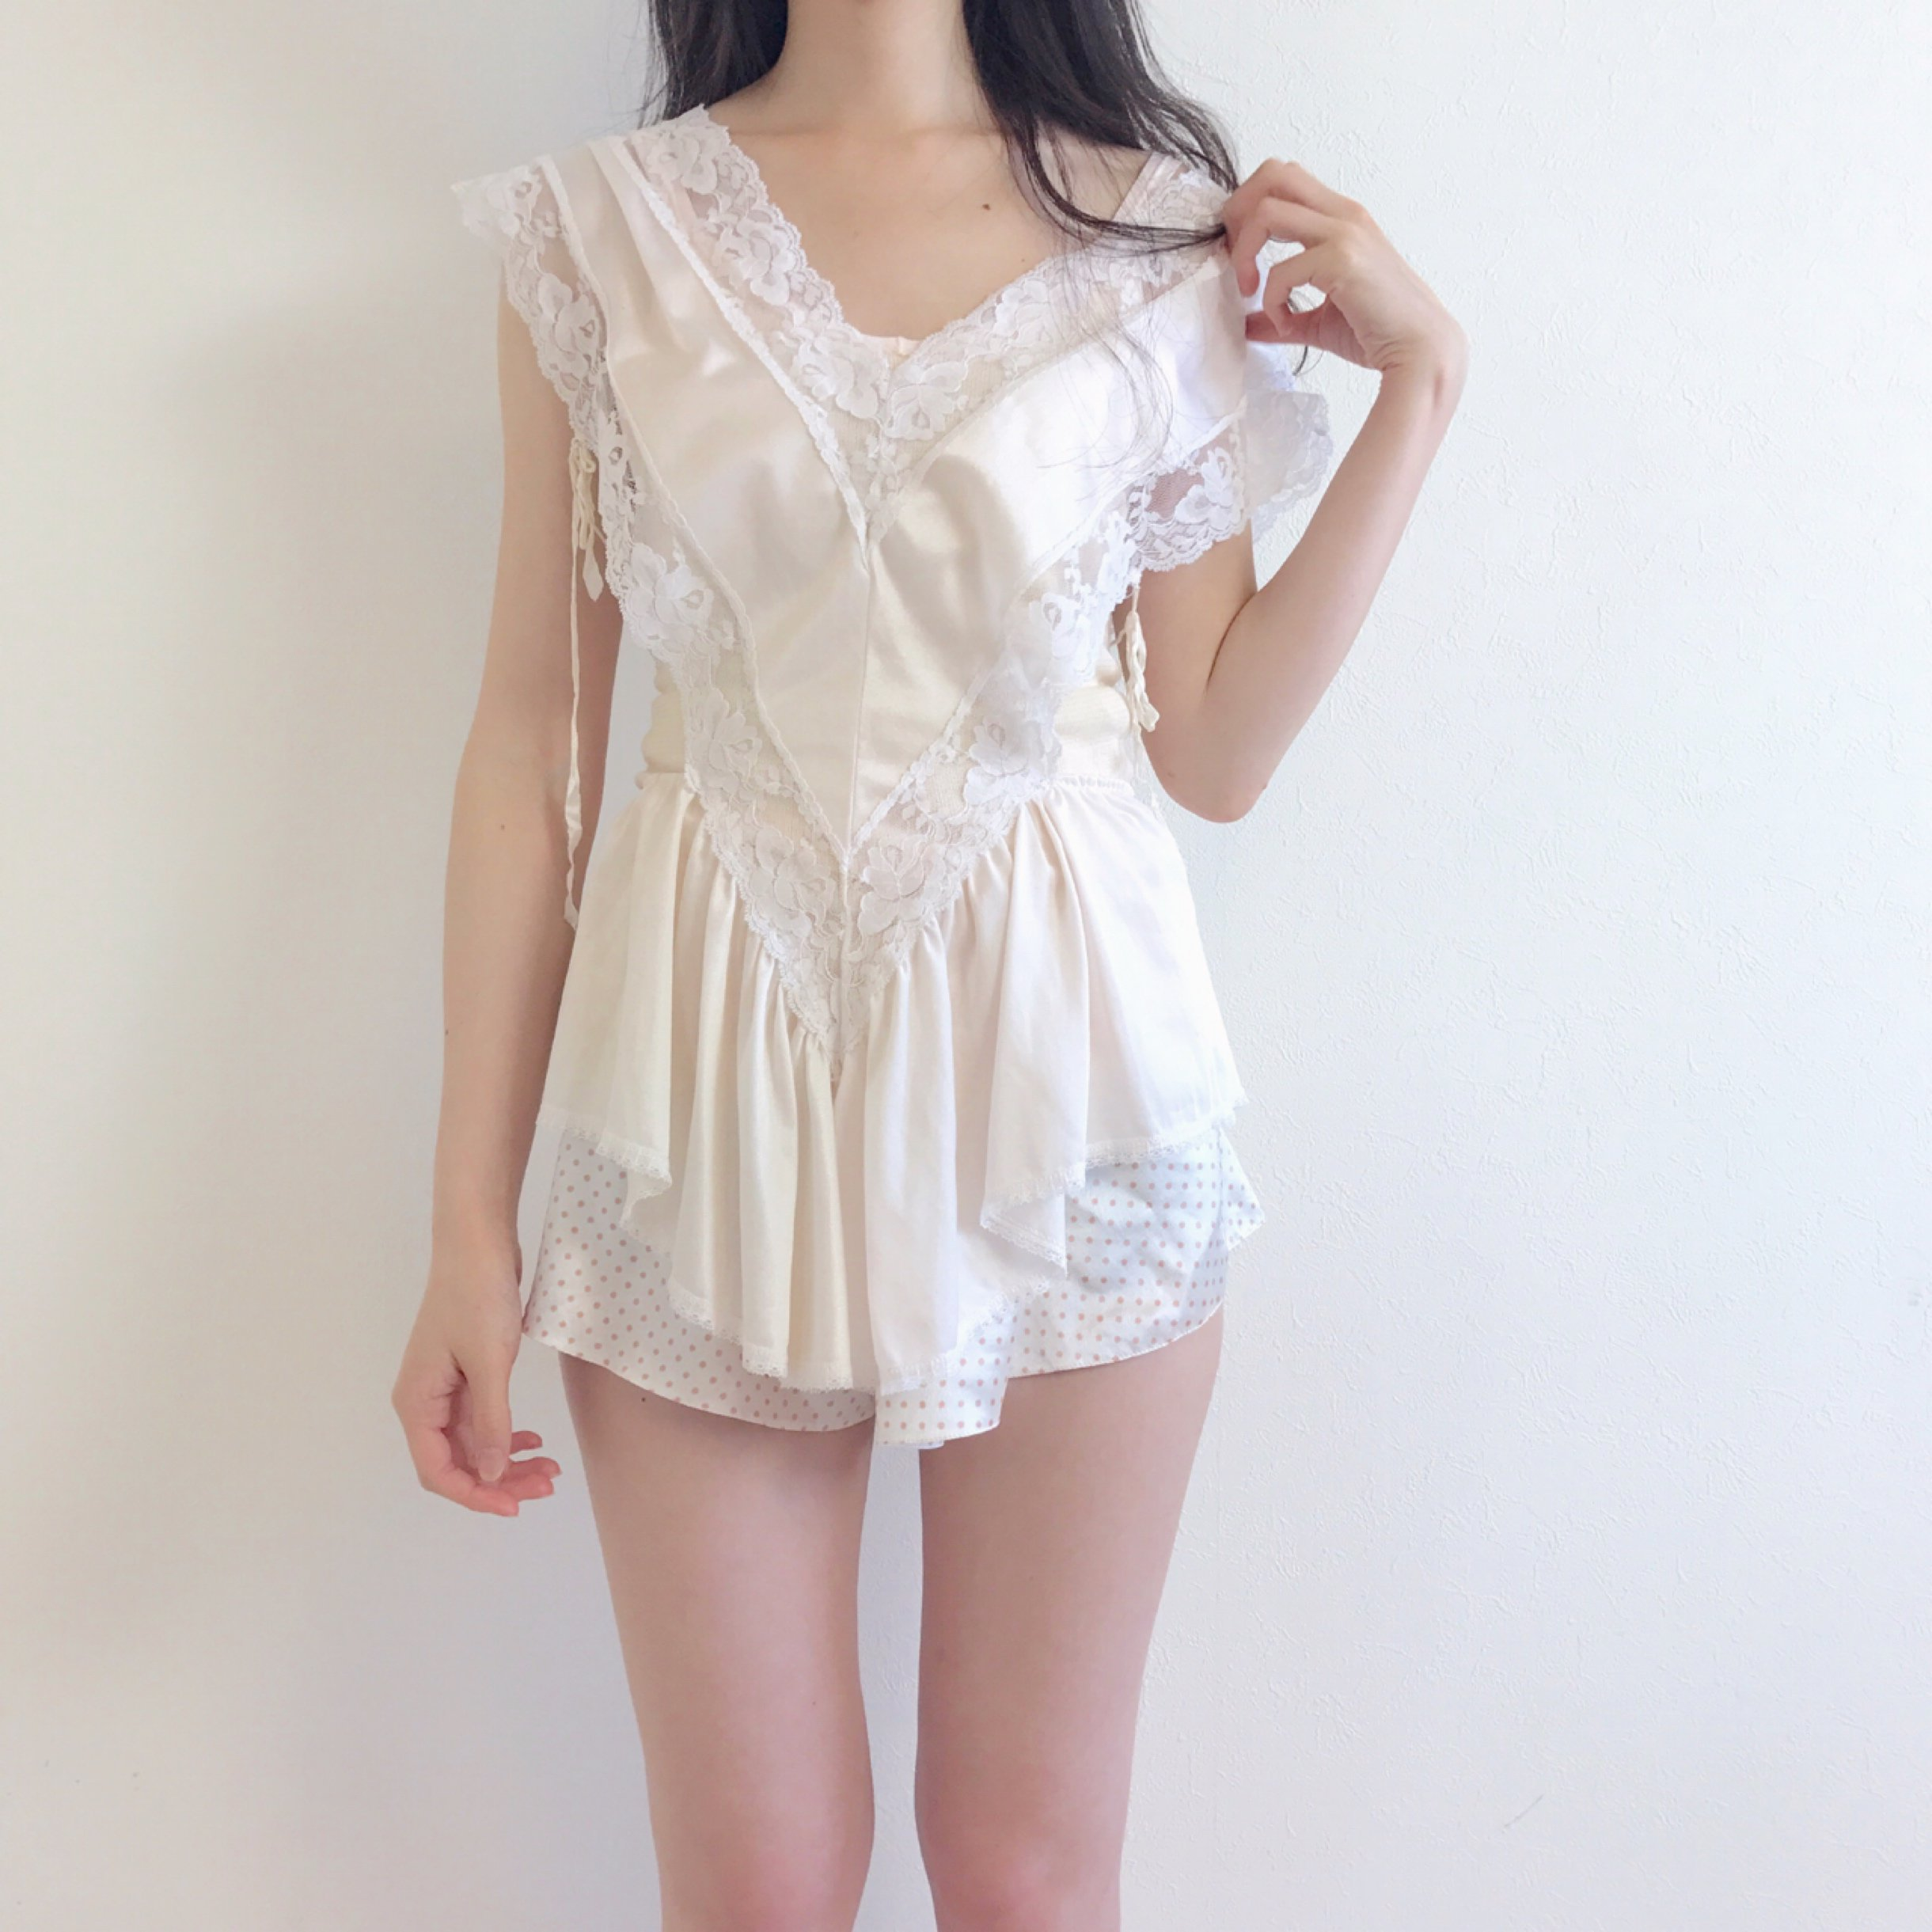 milk white lingerie rompers